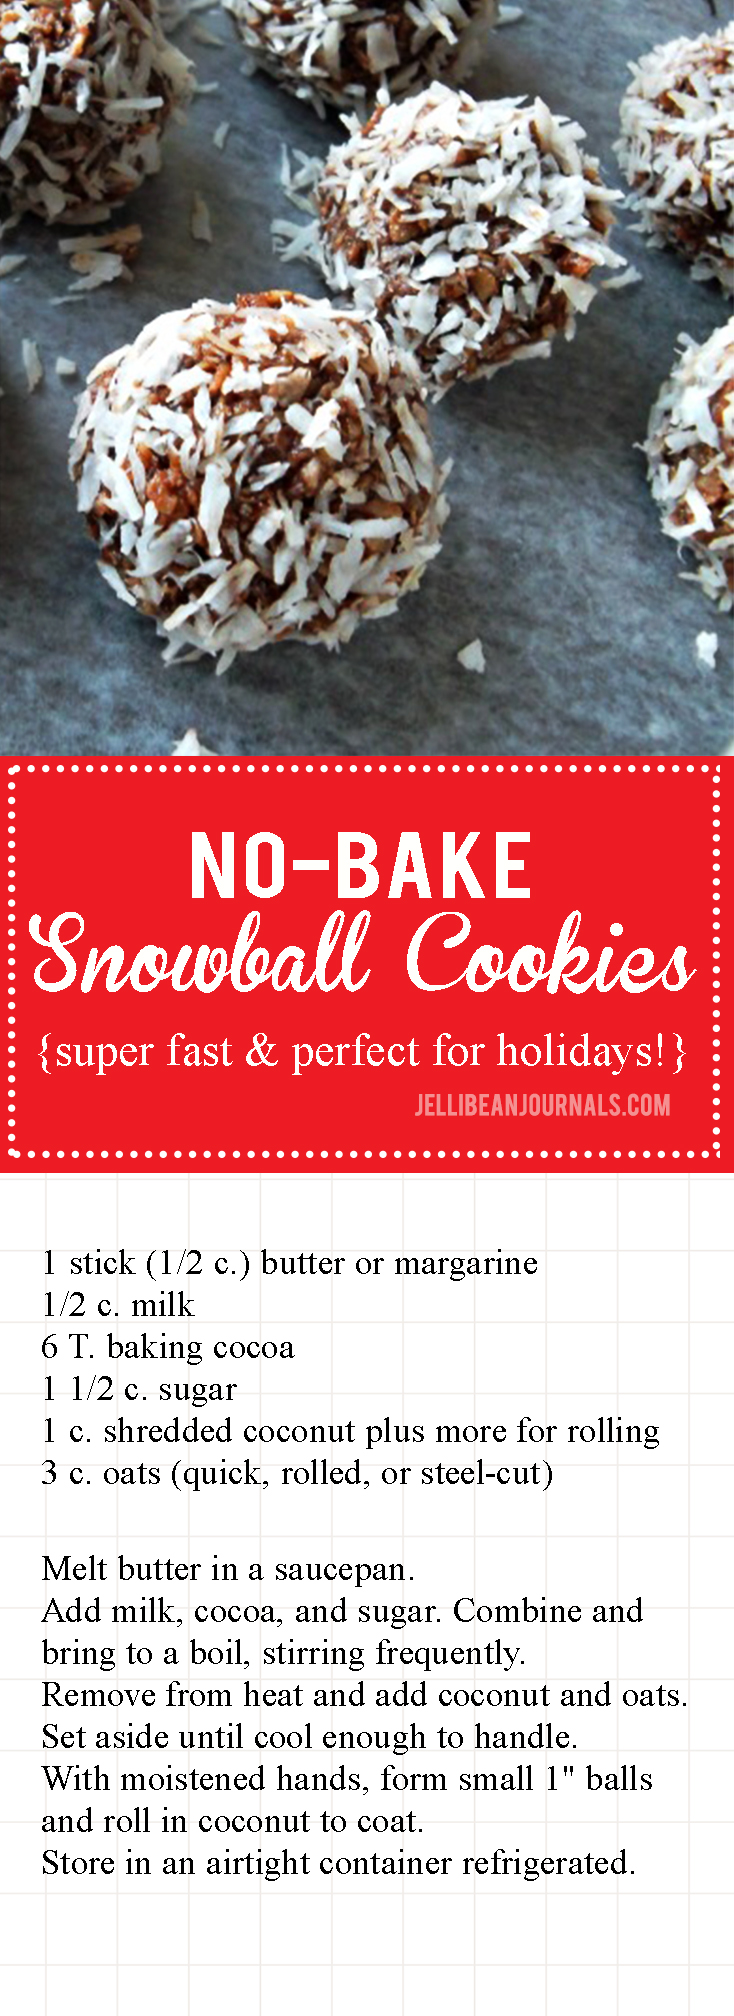 No-Bake Snowball Cookies | Jellibeanjournals.com